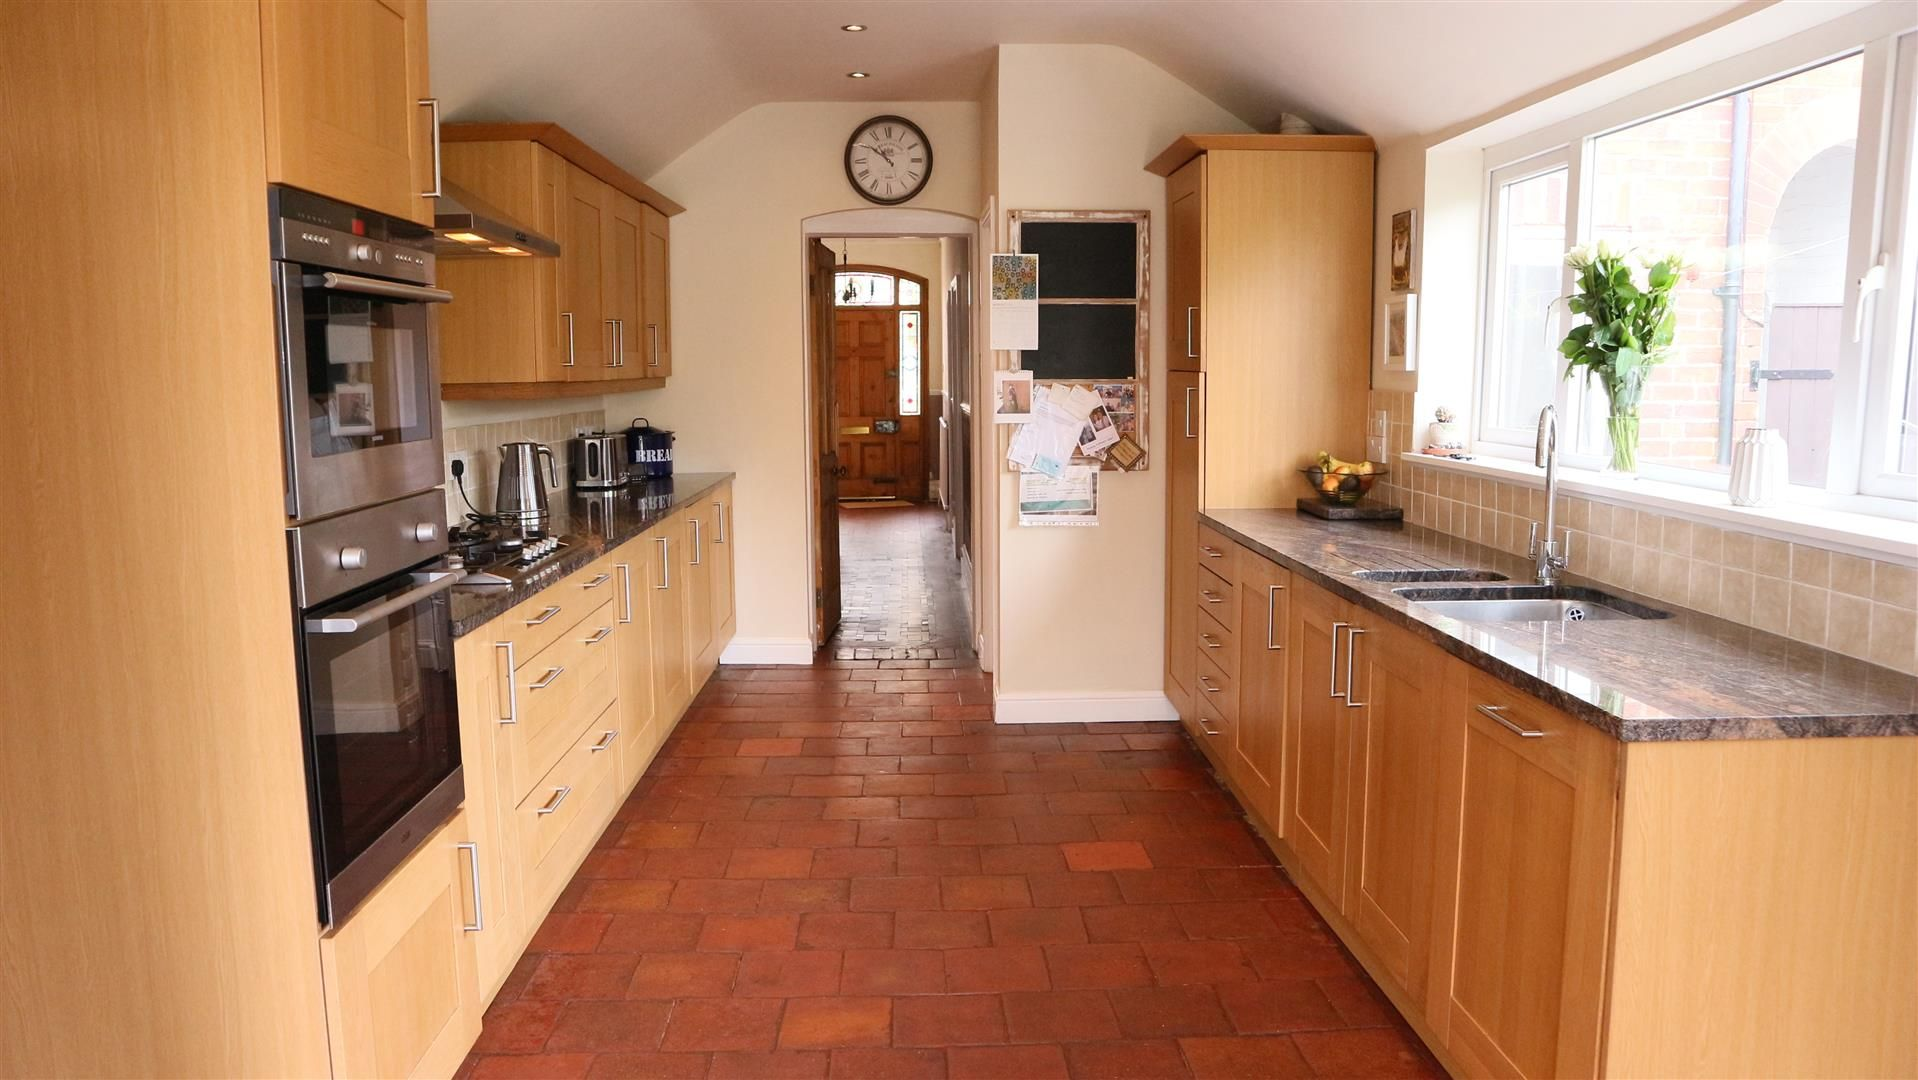 4 bed terraced for sale in Old Quarter  - Property Image 2